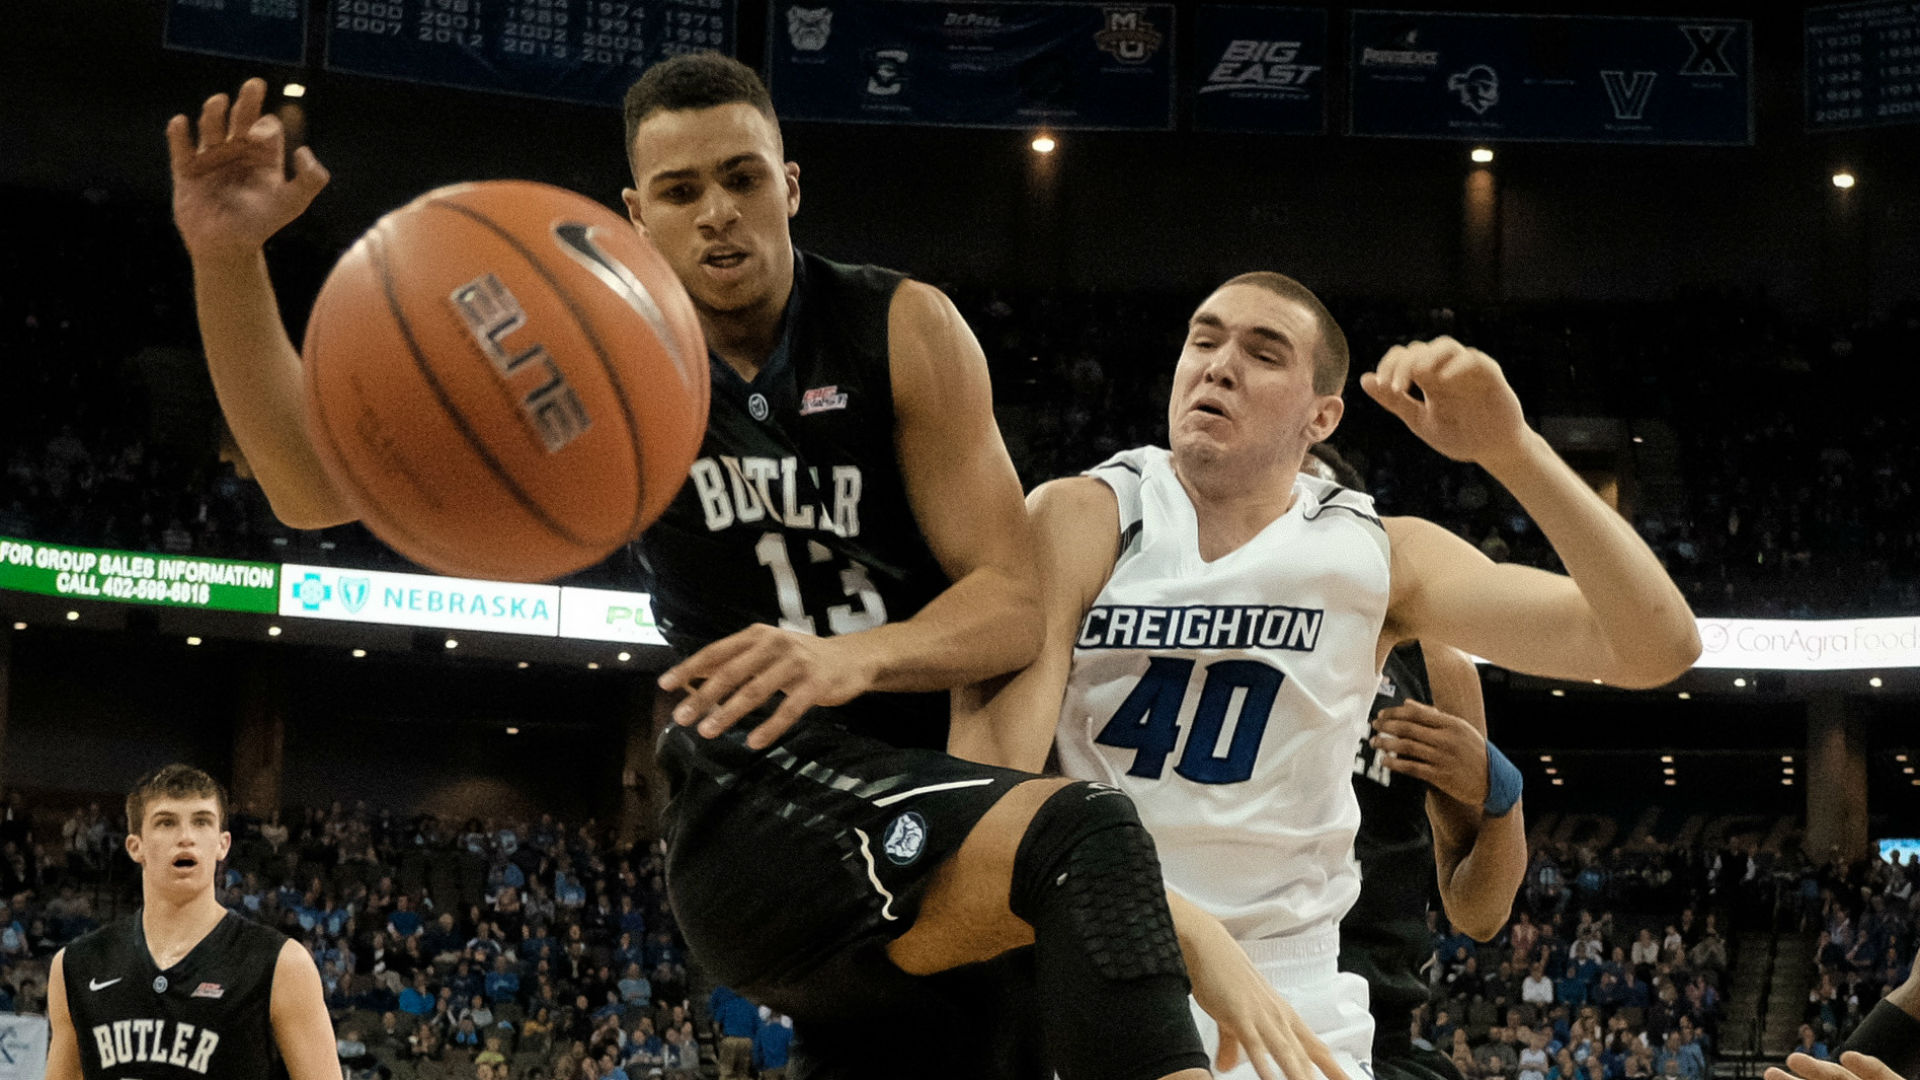 Butler basketball has ties to Miss America pageant